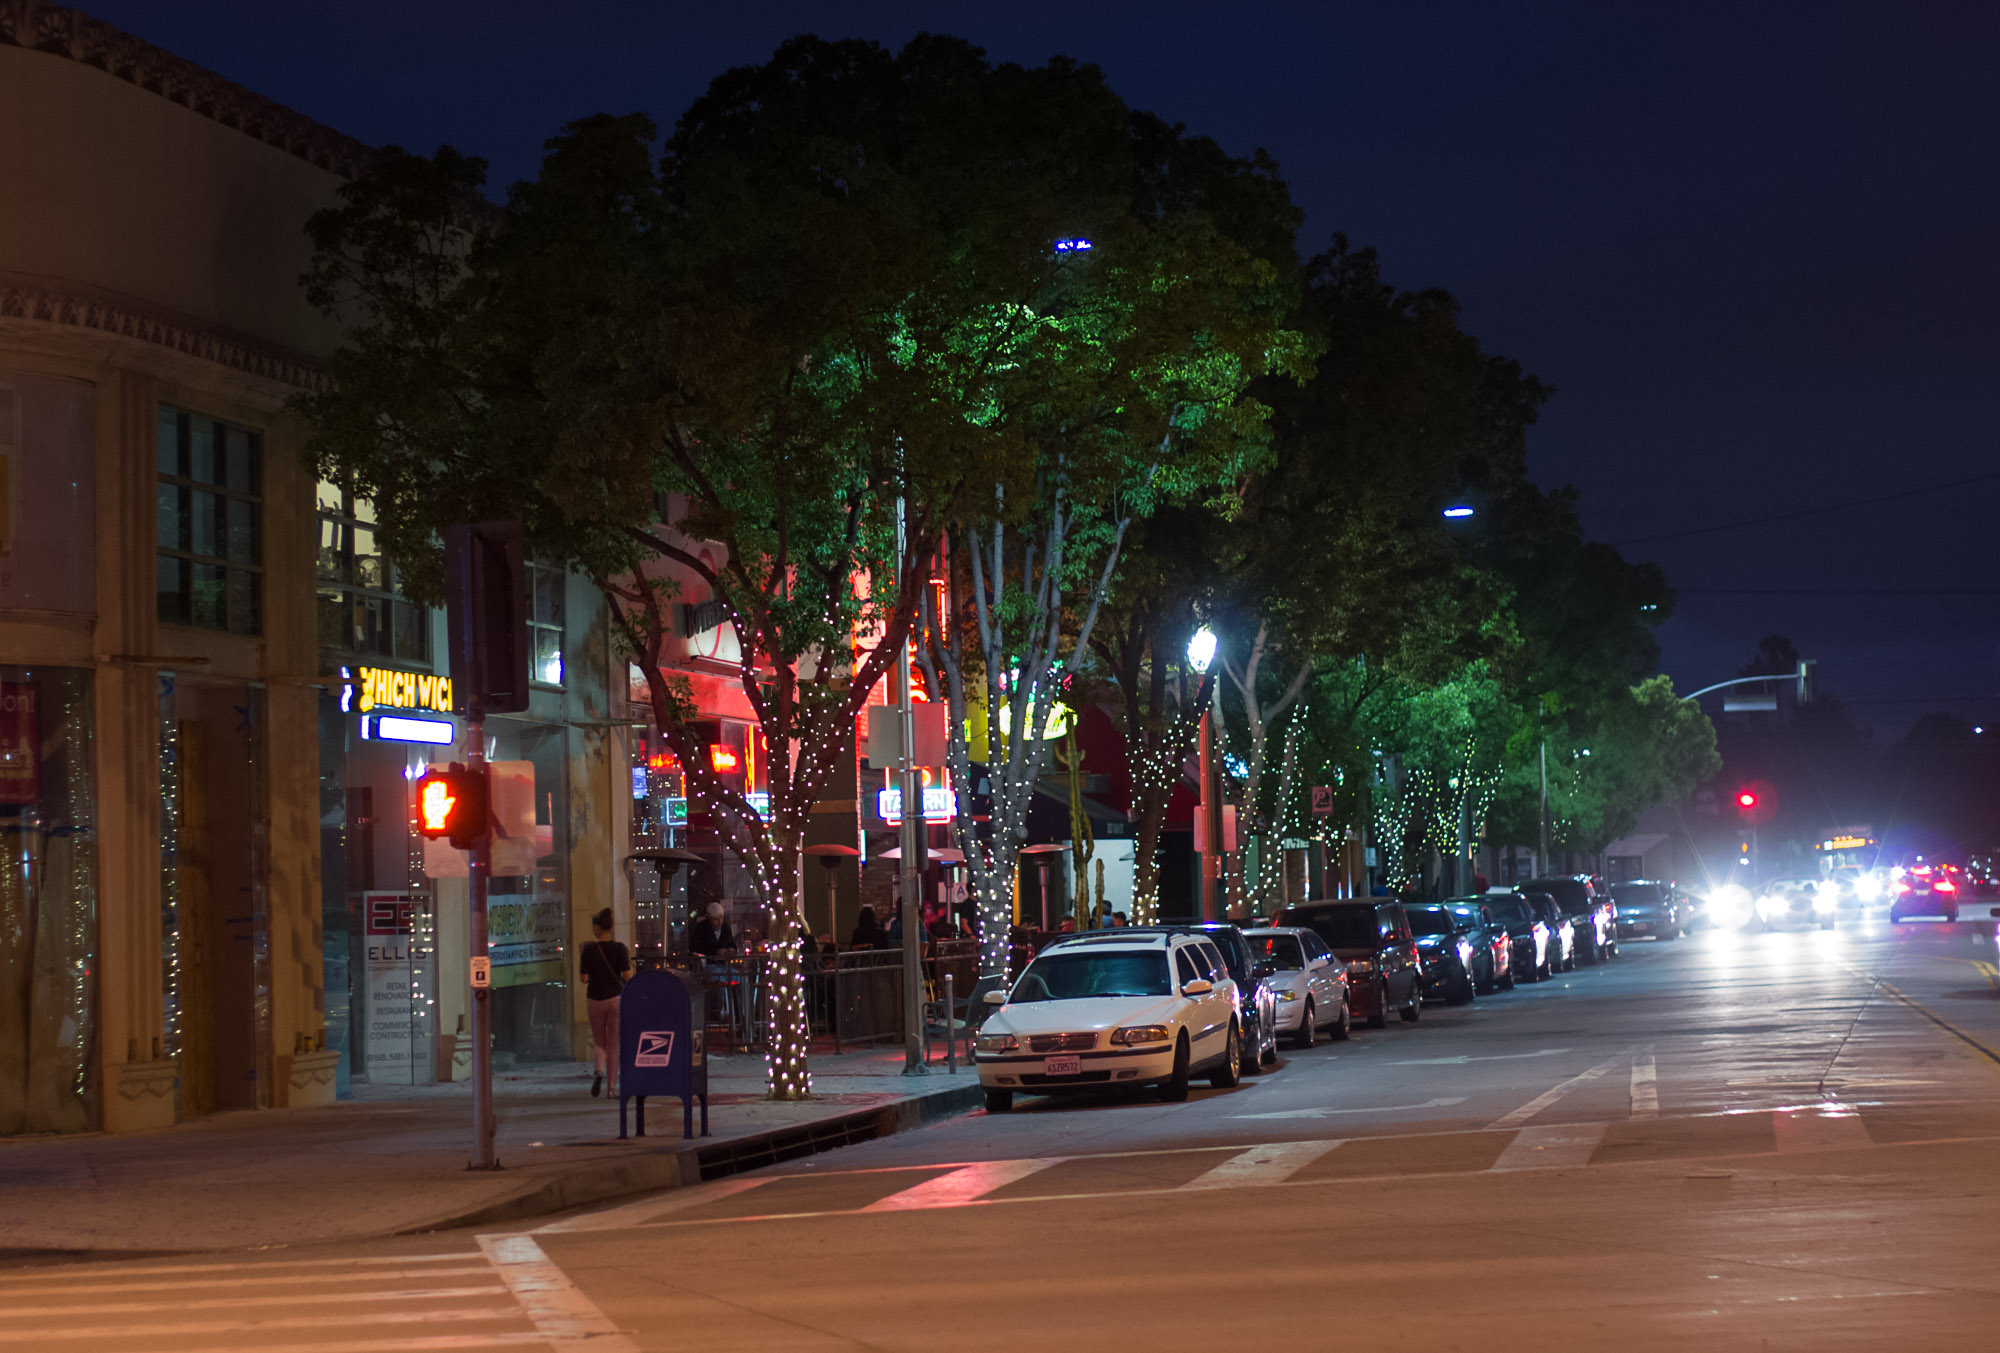 An evening exterior shot of a street with lights and patio diners.